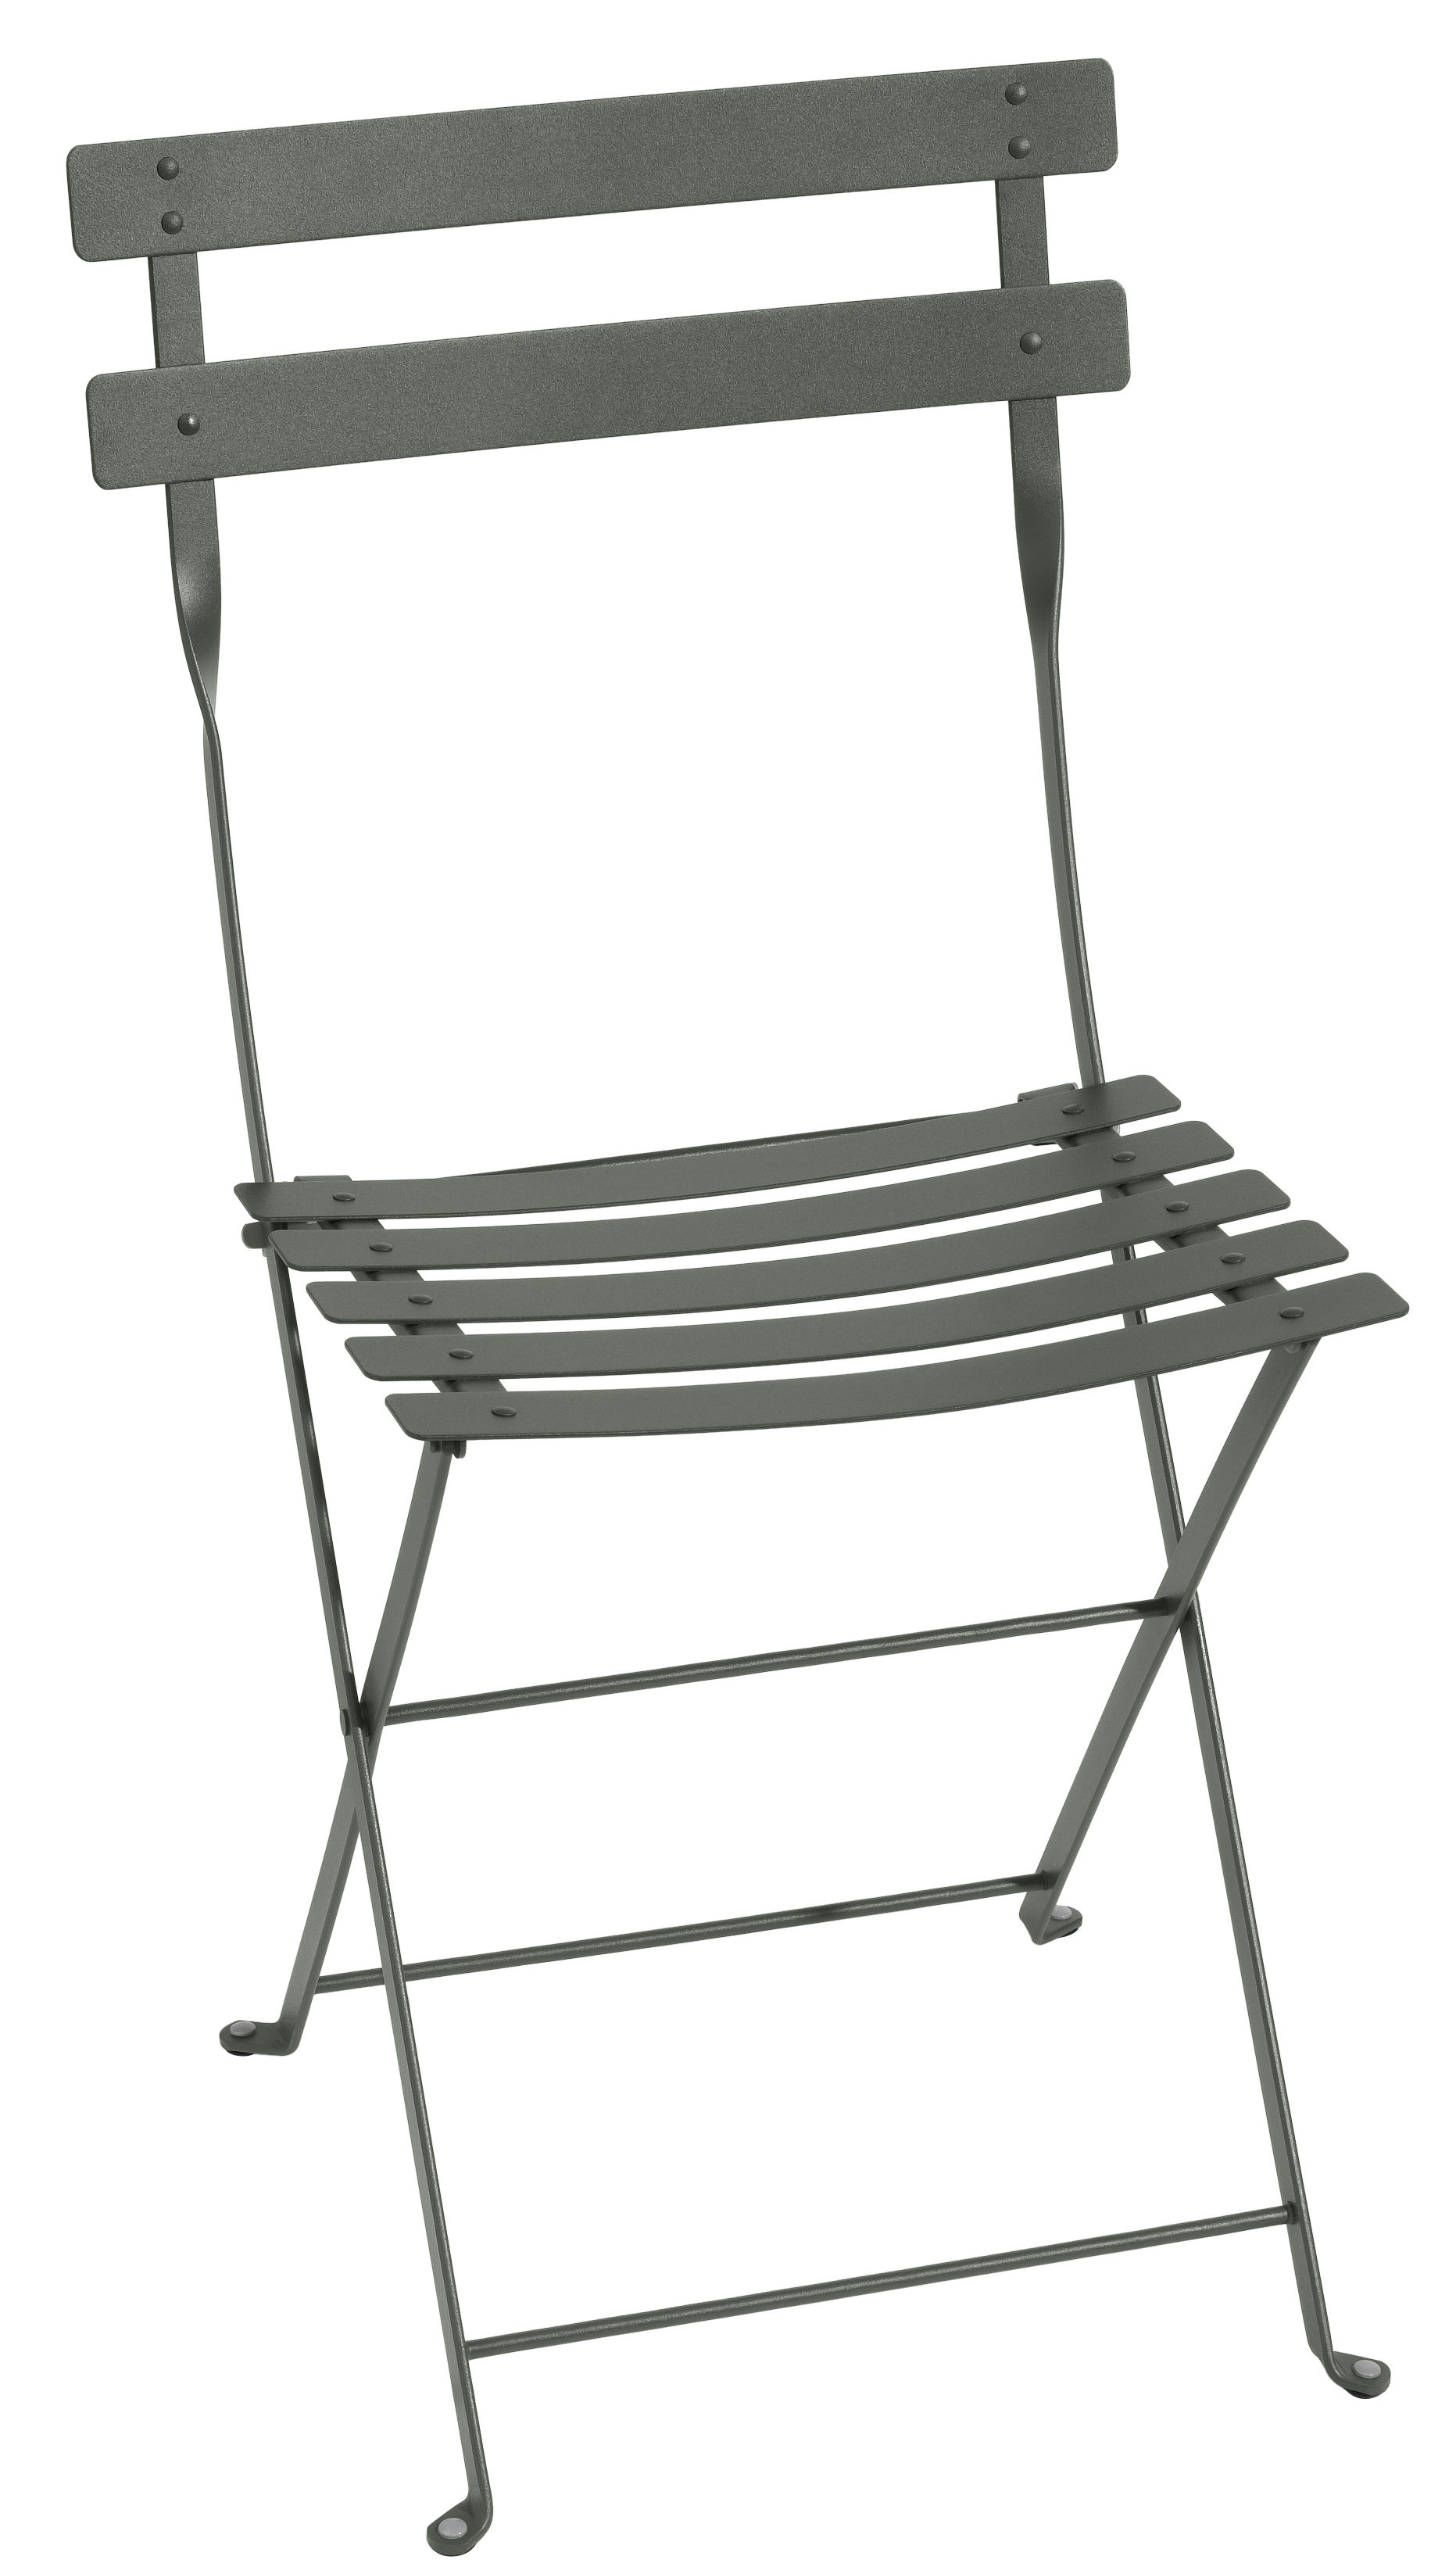 Furniture - Chairs - Bistro Folding chair - Metal by Fermob - Rosemary - Lacquered steel